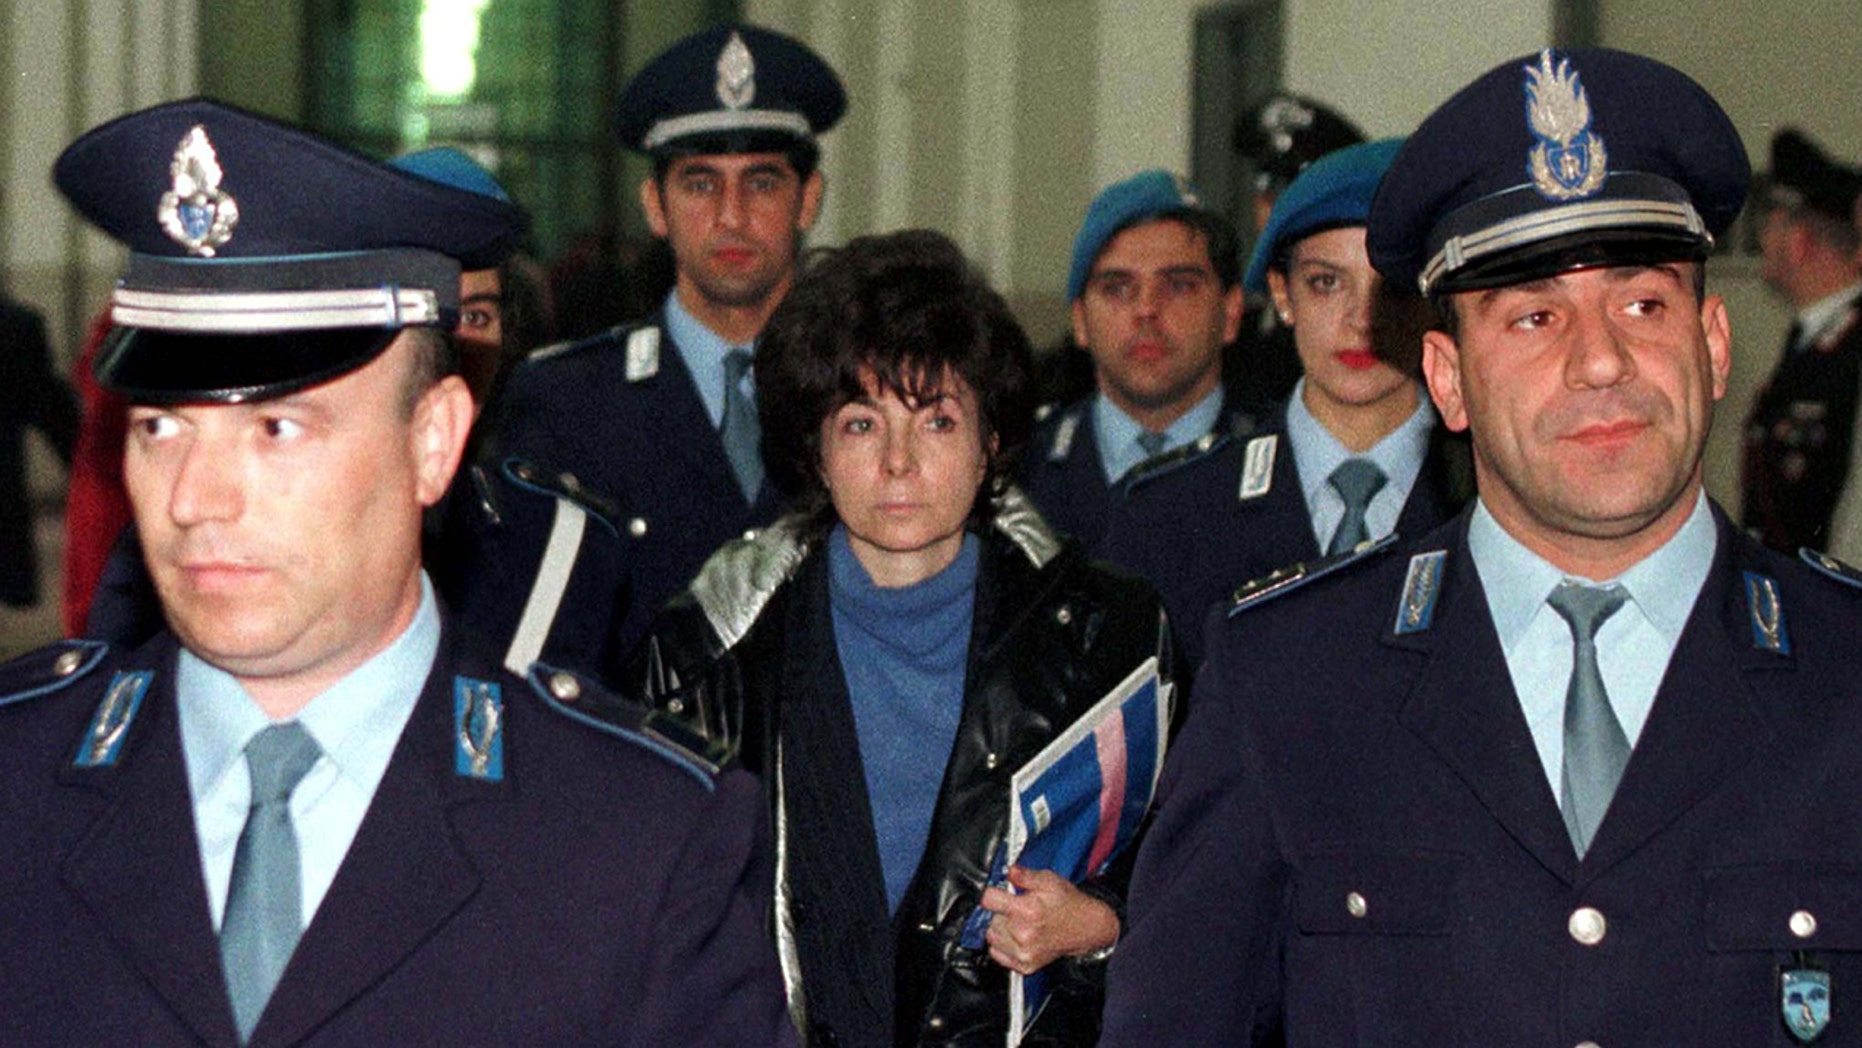 Former Italian socialite Patrizia Reggiani was convicted of arranging the 1995 murder of her ex-husband, fashion heir Maurizio Gucci.